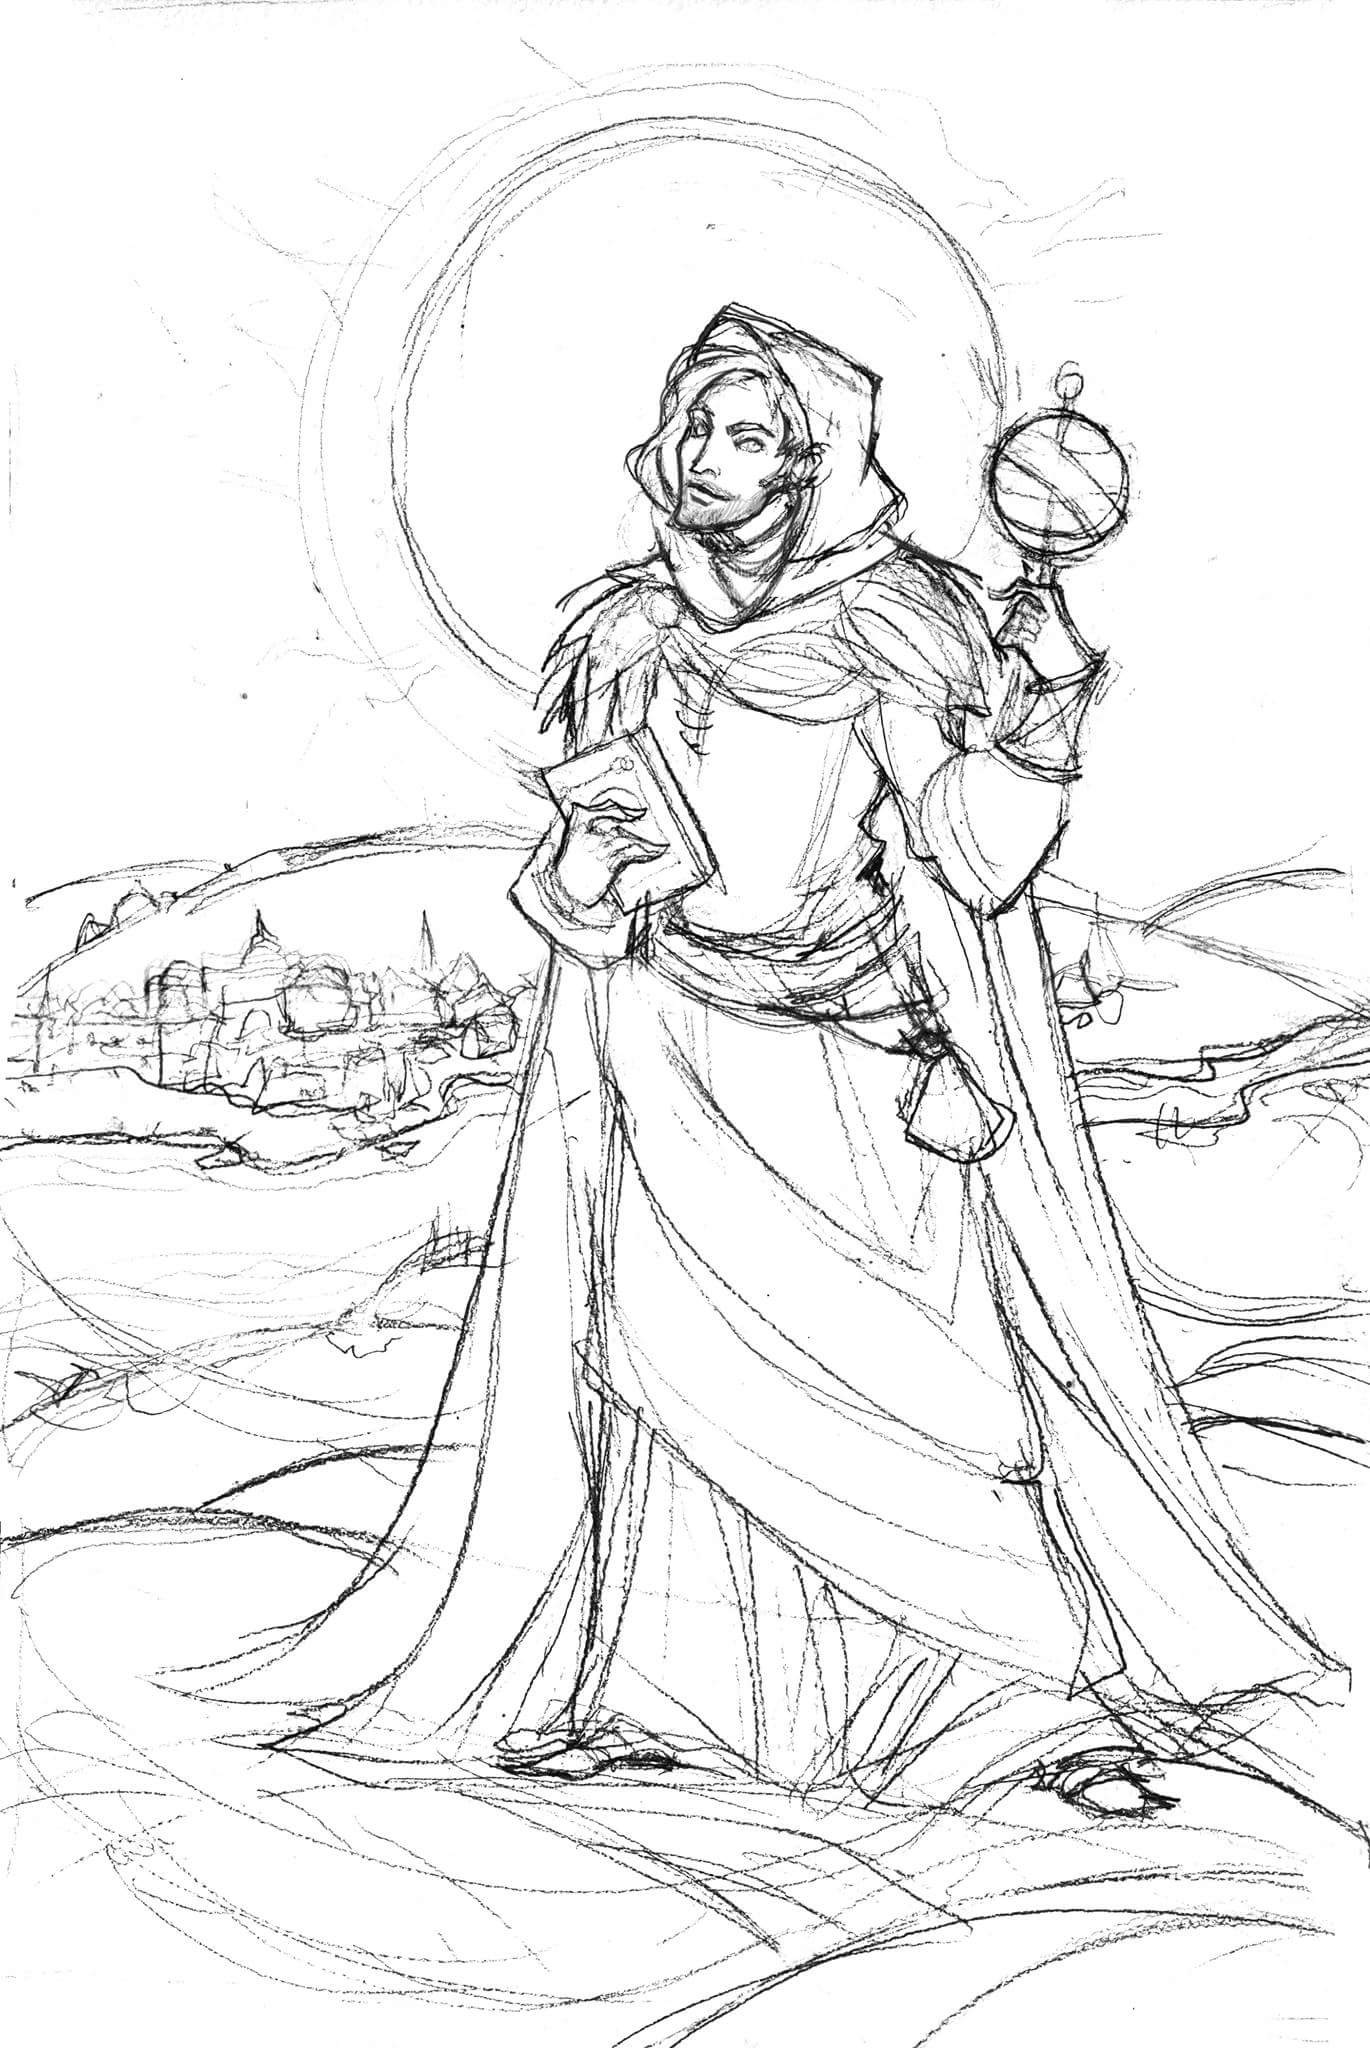 Sketch of the mage